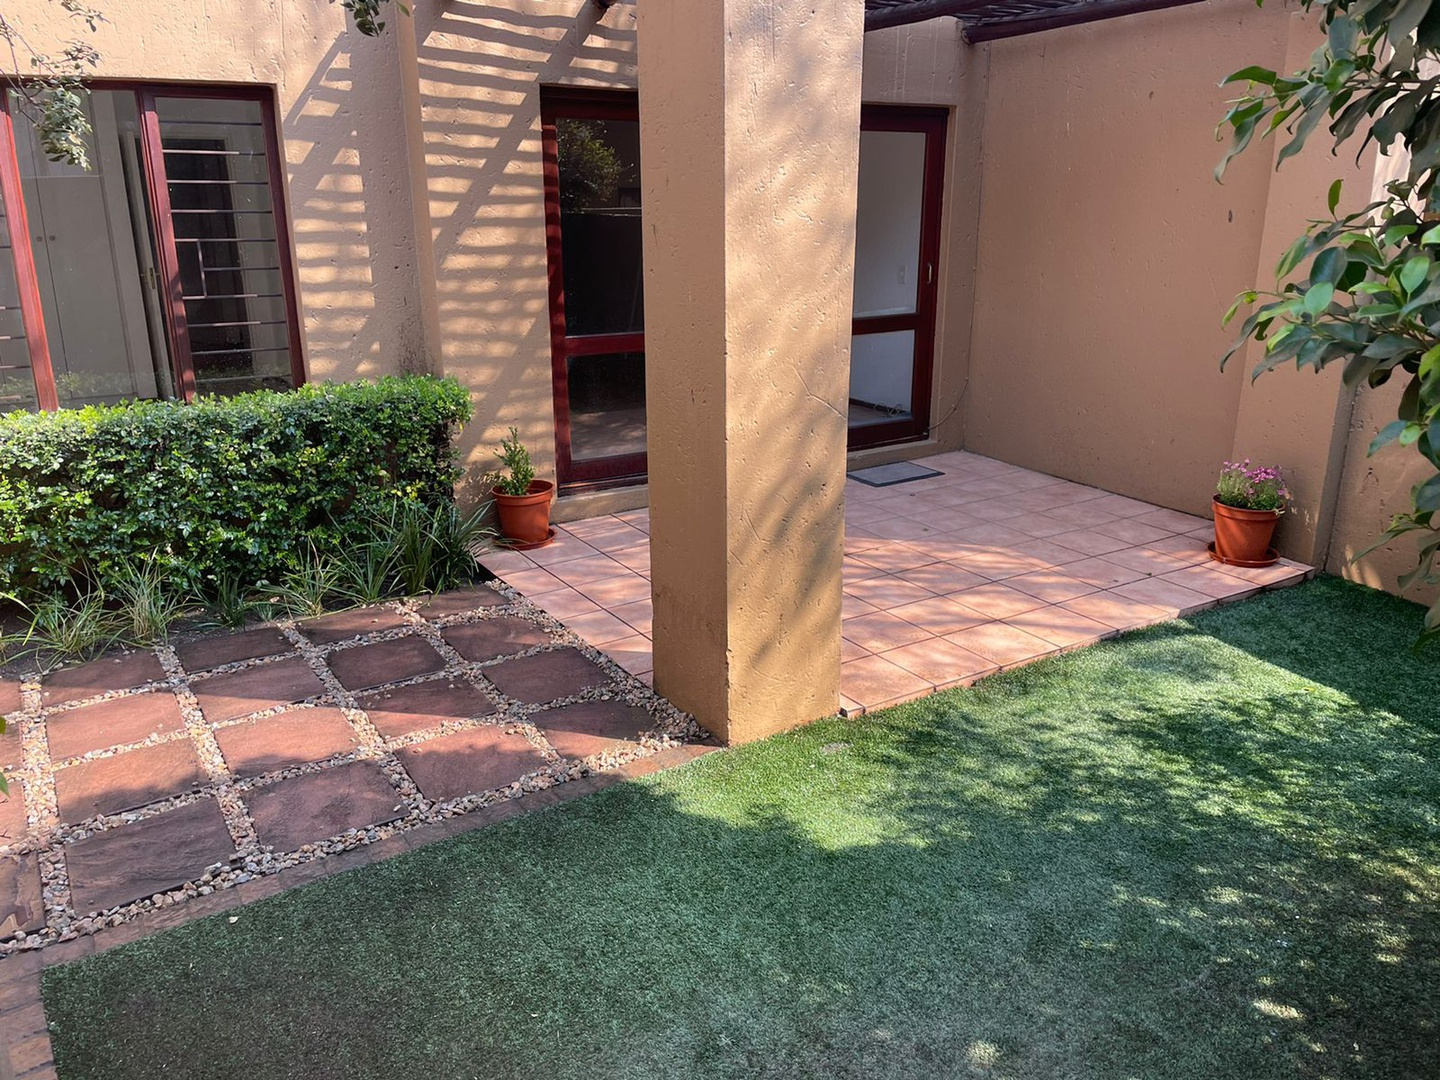 Apartment in Douglasdale - WhatsApp Image 2021-09-04 at 6.18.13 PM.jpeg